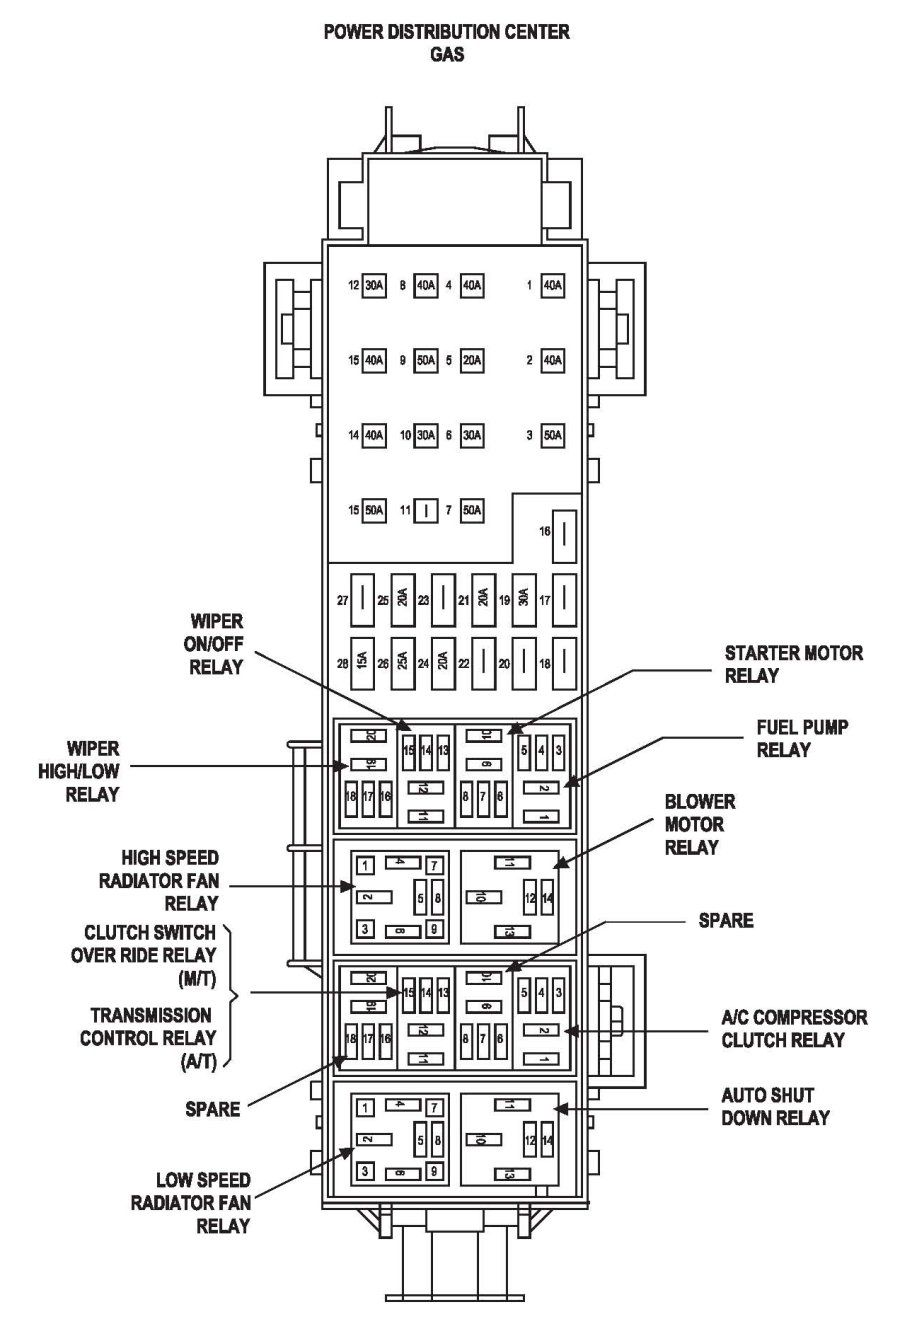 1999 jeep wrangler sport fuse box diagram wiring diagram for light 89 jeep wrangler alternator 89 [ 900 x 1336 Pixel ]